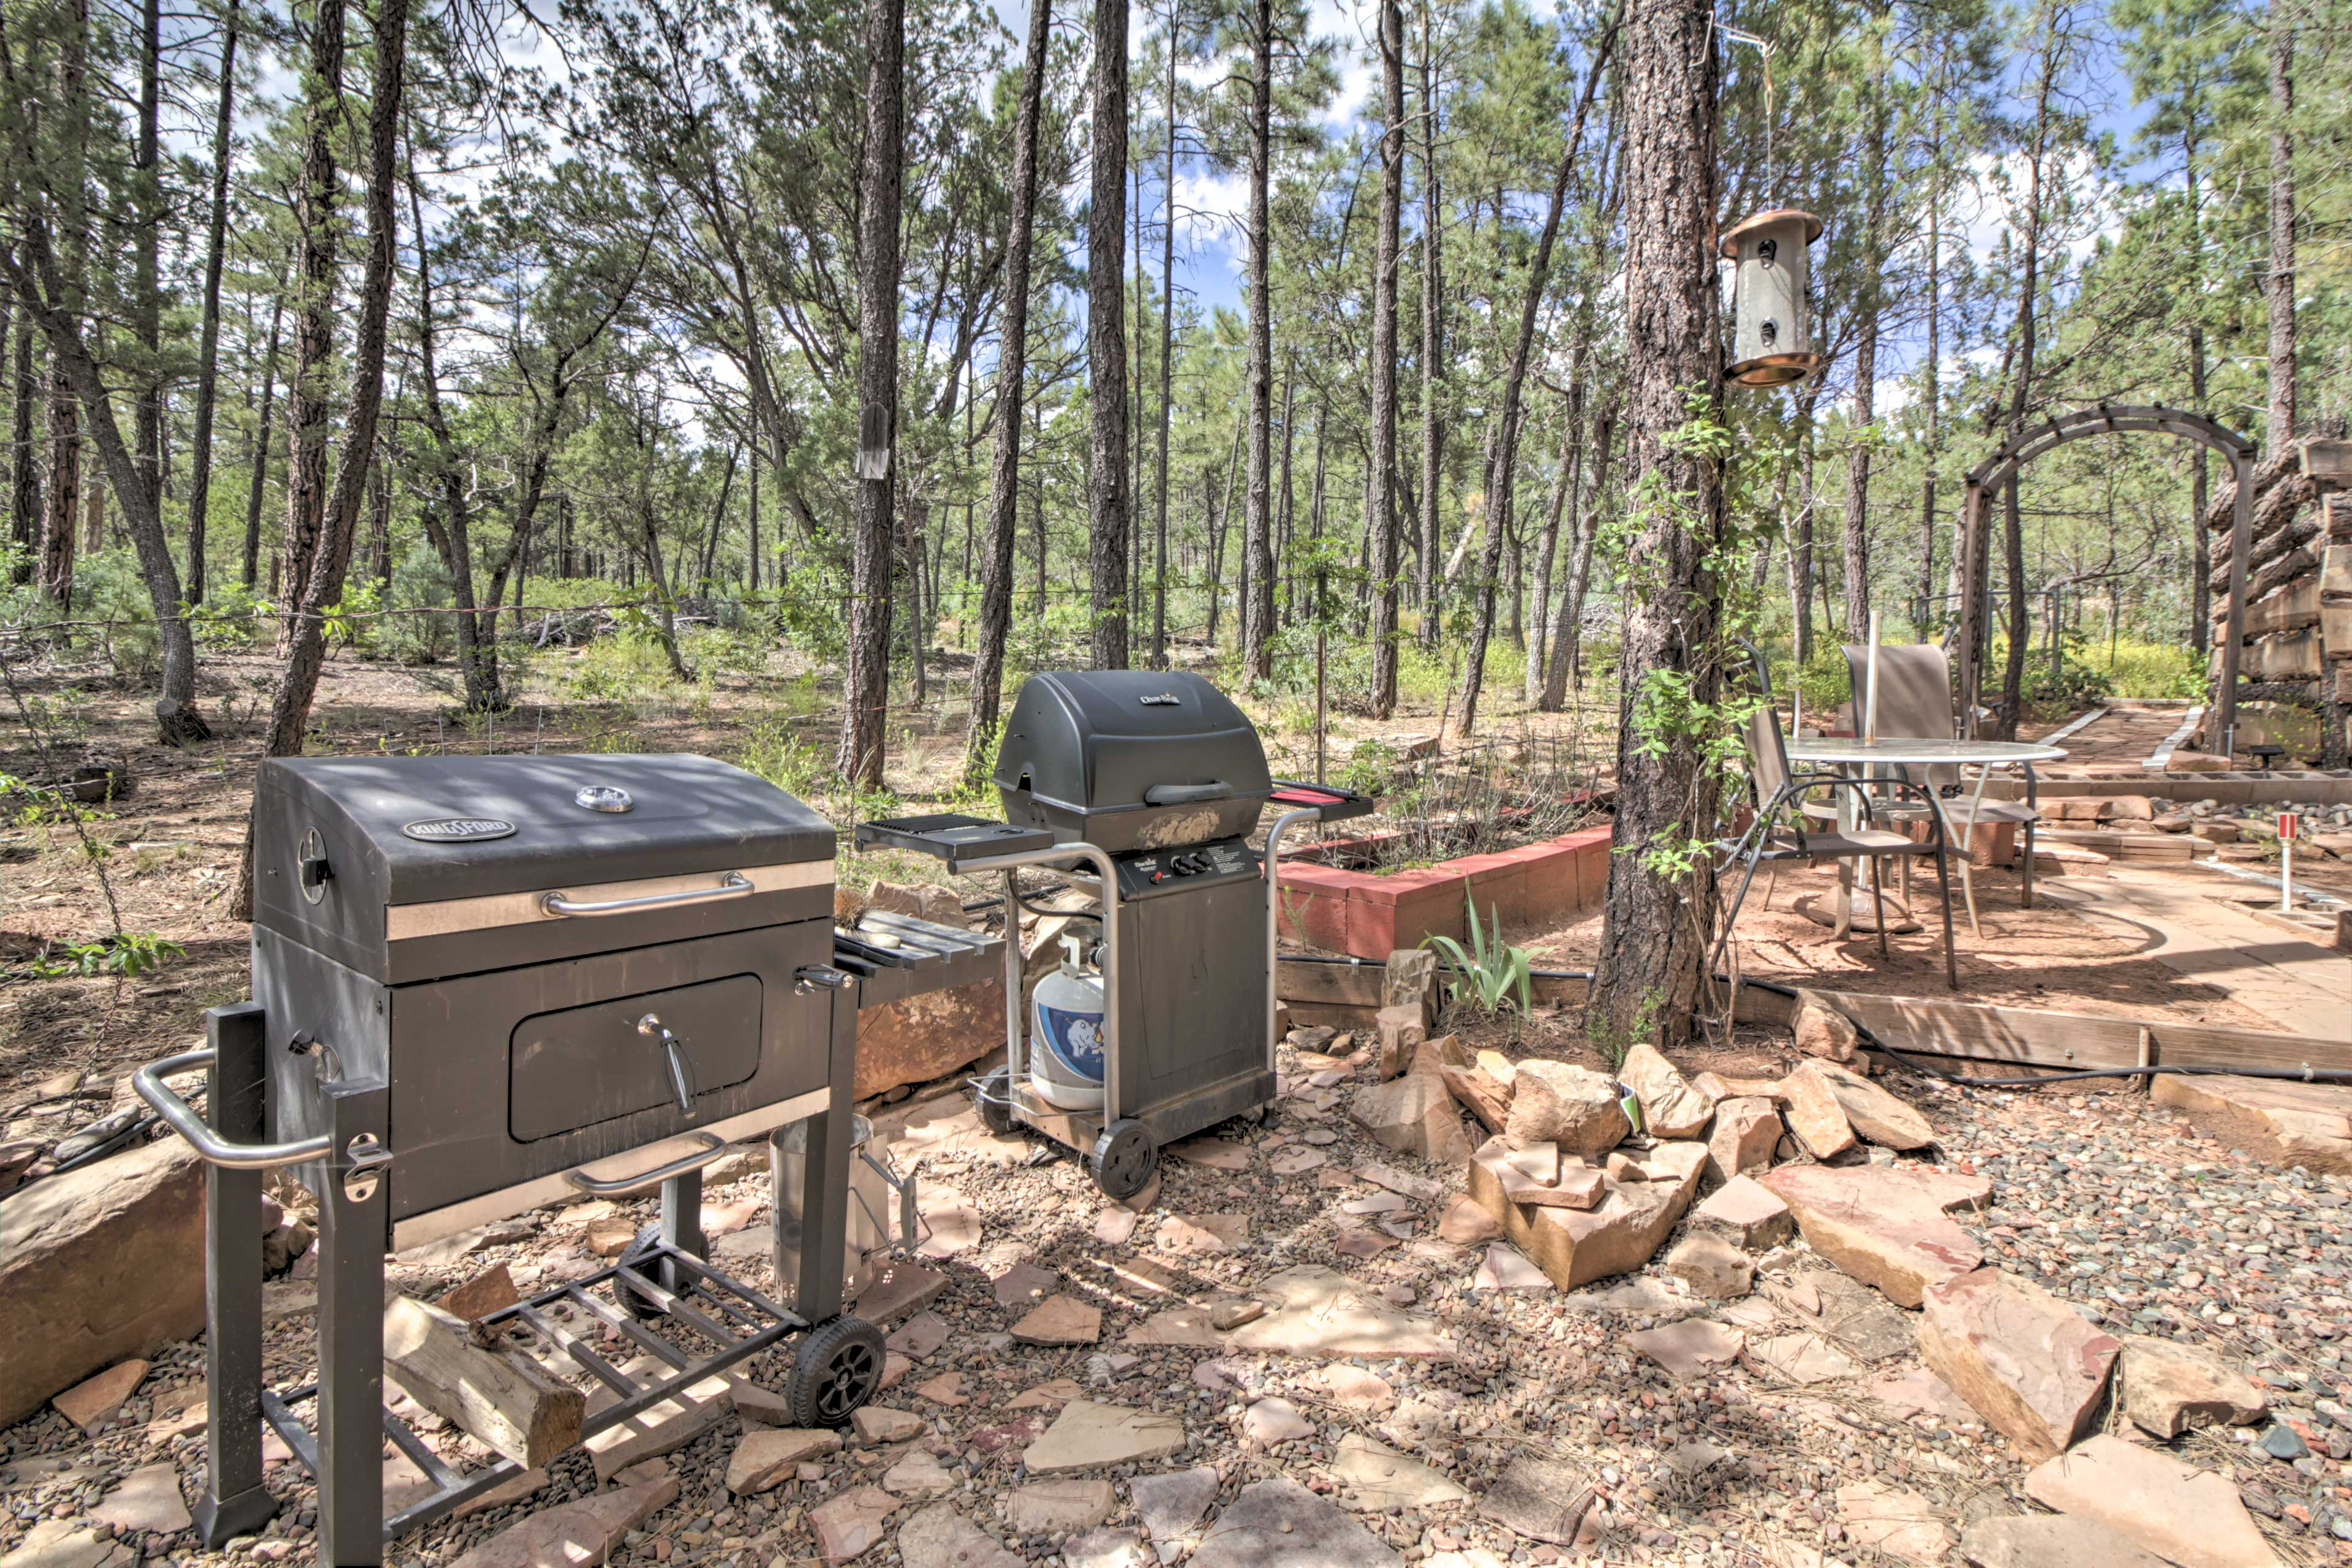 Who's ready for a savory barbecue?